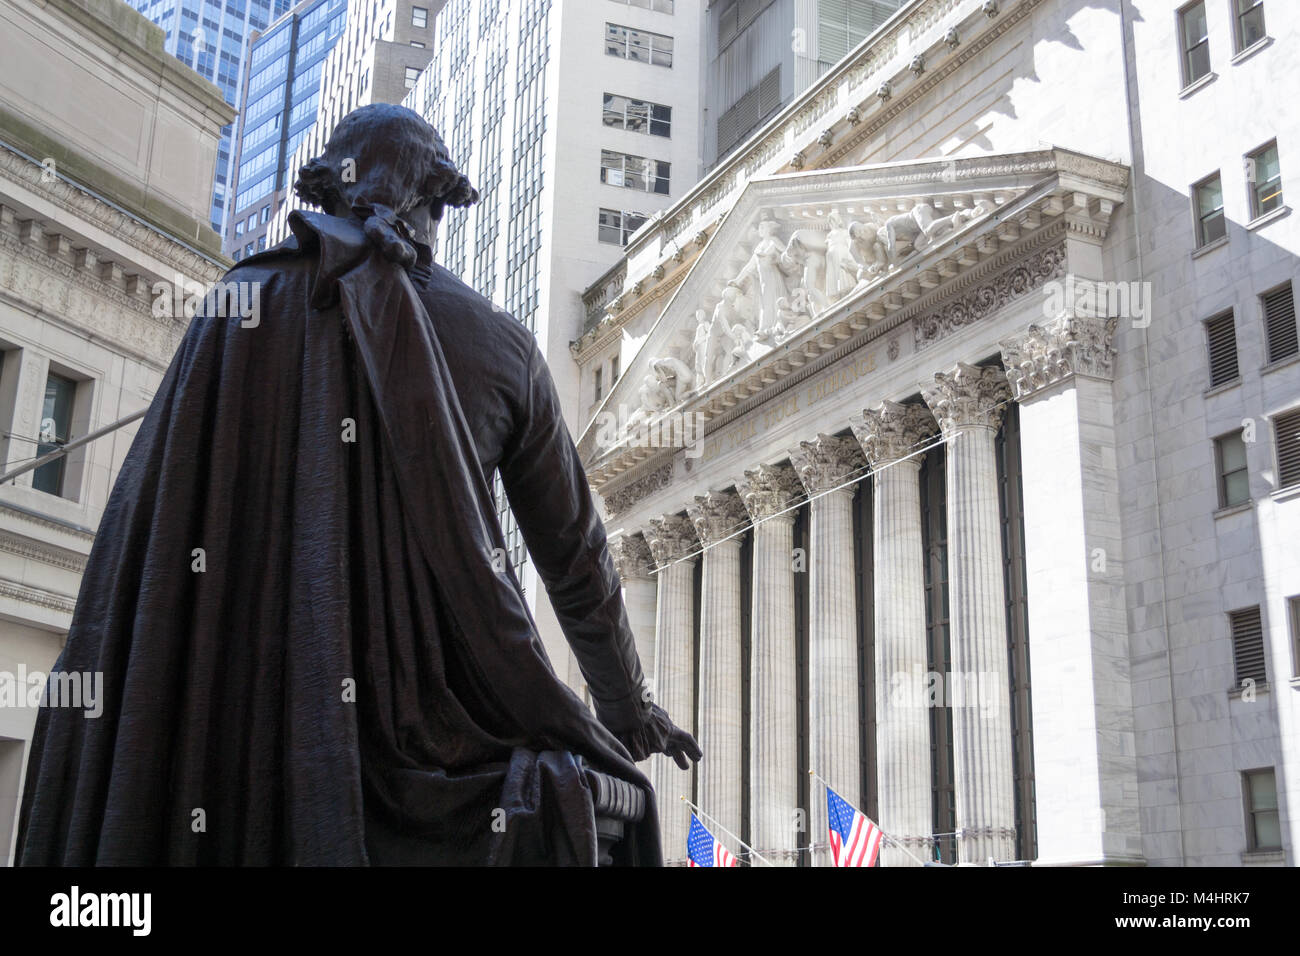 George Washington observing the New York Stock Exchange building - Stock Image